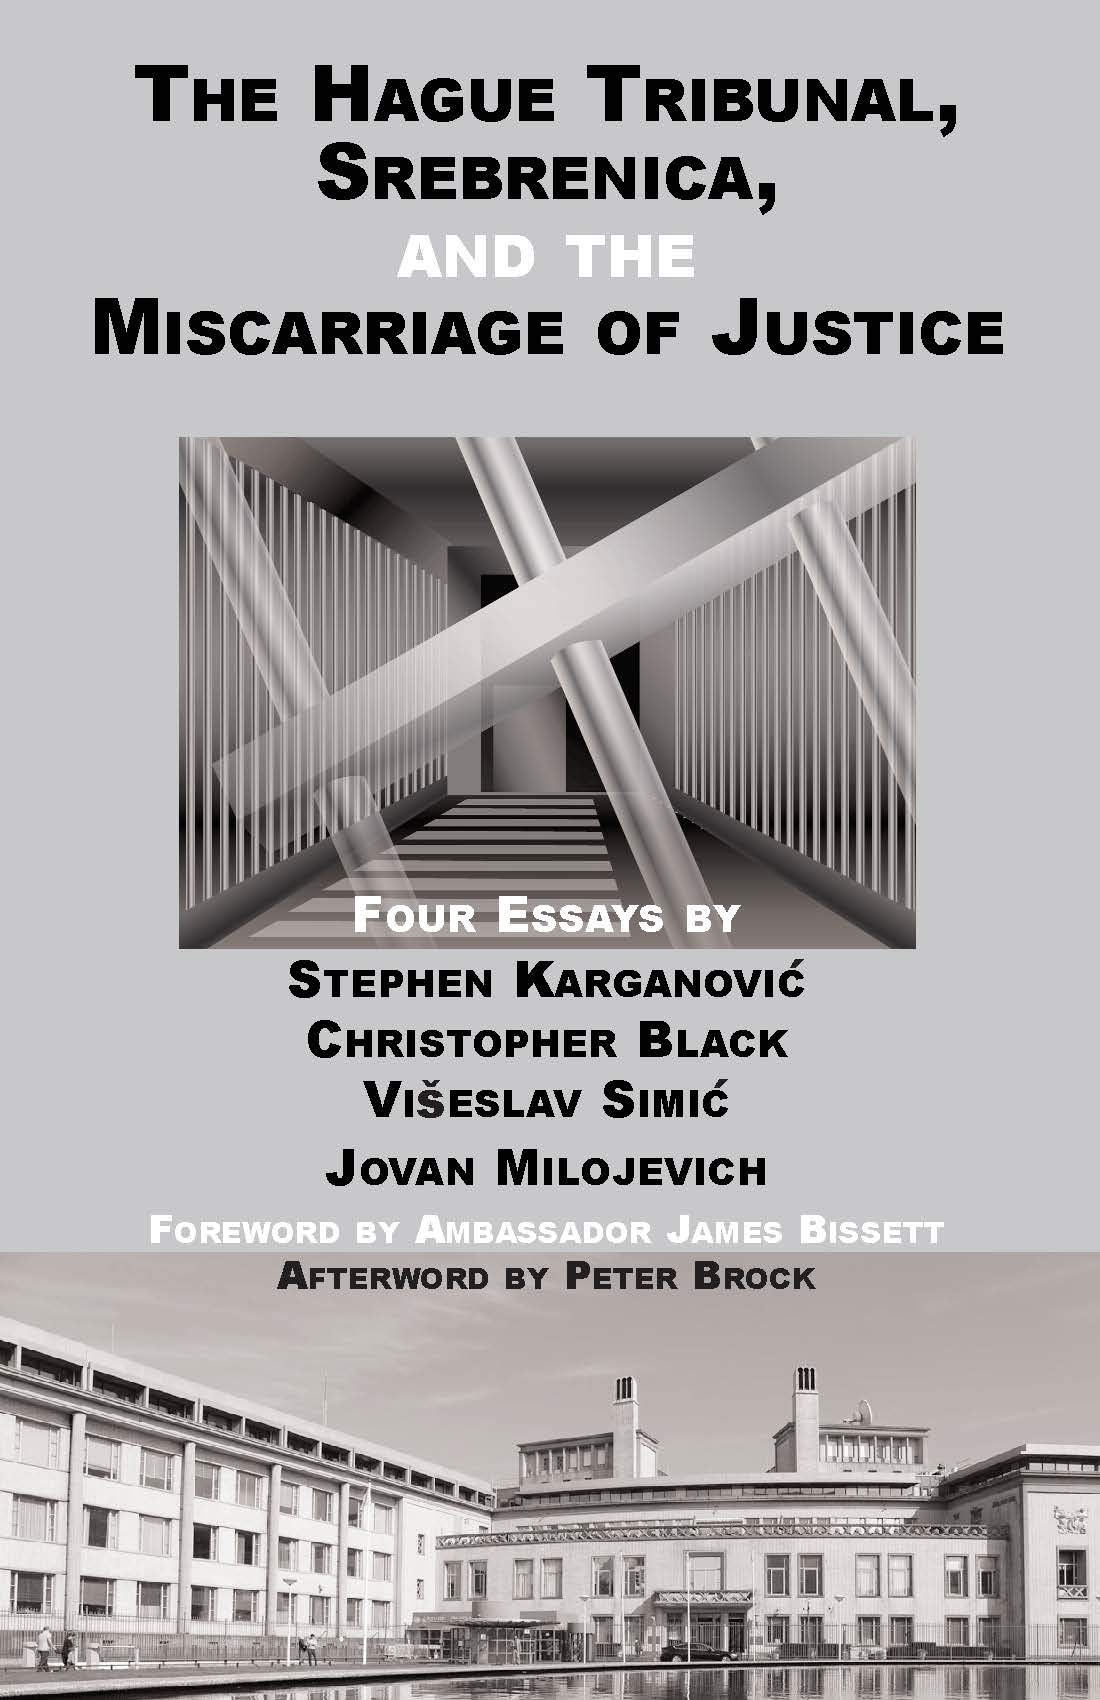 Image result for The Hague Tribunal, Srebrenica, and the Miscarriage of Justice (Unwritten History, Chicago).